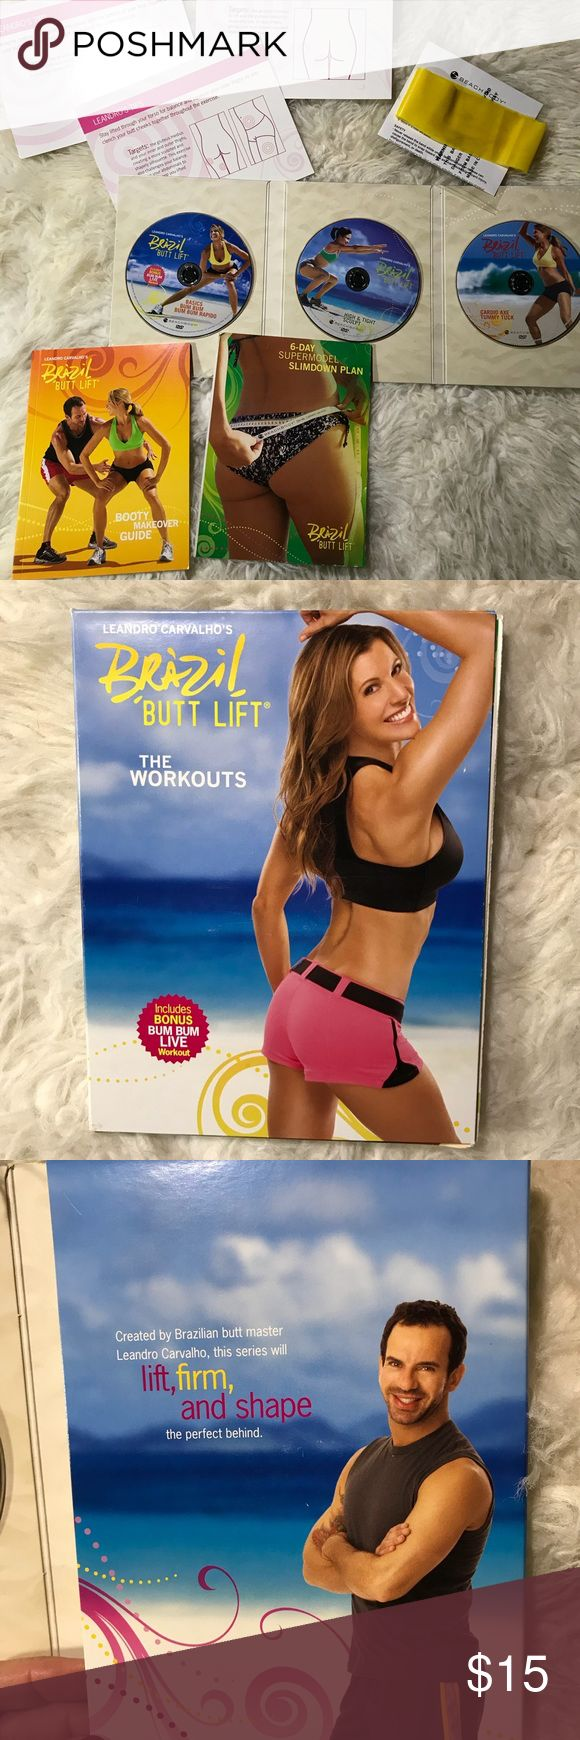 Beachbody Brazilian Butt Lift DVDs By Leandro Carvalho the Brazilian butt master with Team Beachbody. 3 workout DVDs for getting that Brazilian Butt all girls want. This will lift, firm, and shape the perfect behind. Includes the yellow band, the booty makeover guide, & a 6 day super model slim down plan. Preowned but all disc are in good working condition. Over $52 value. Get it now for a low price. beachbody Other